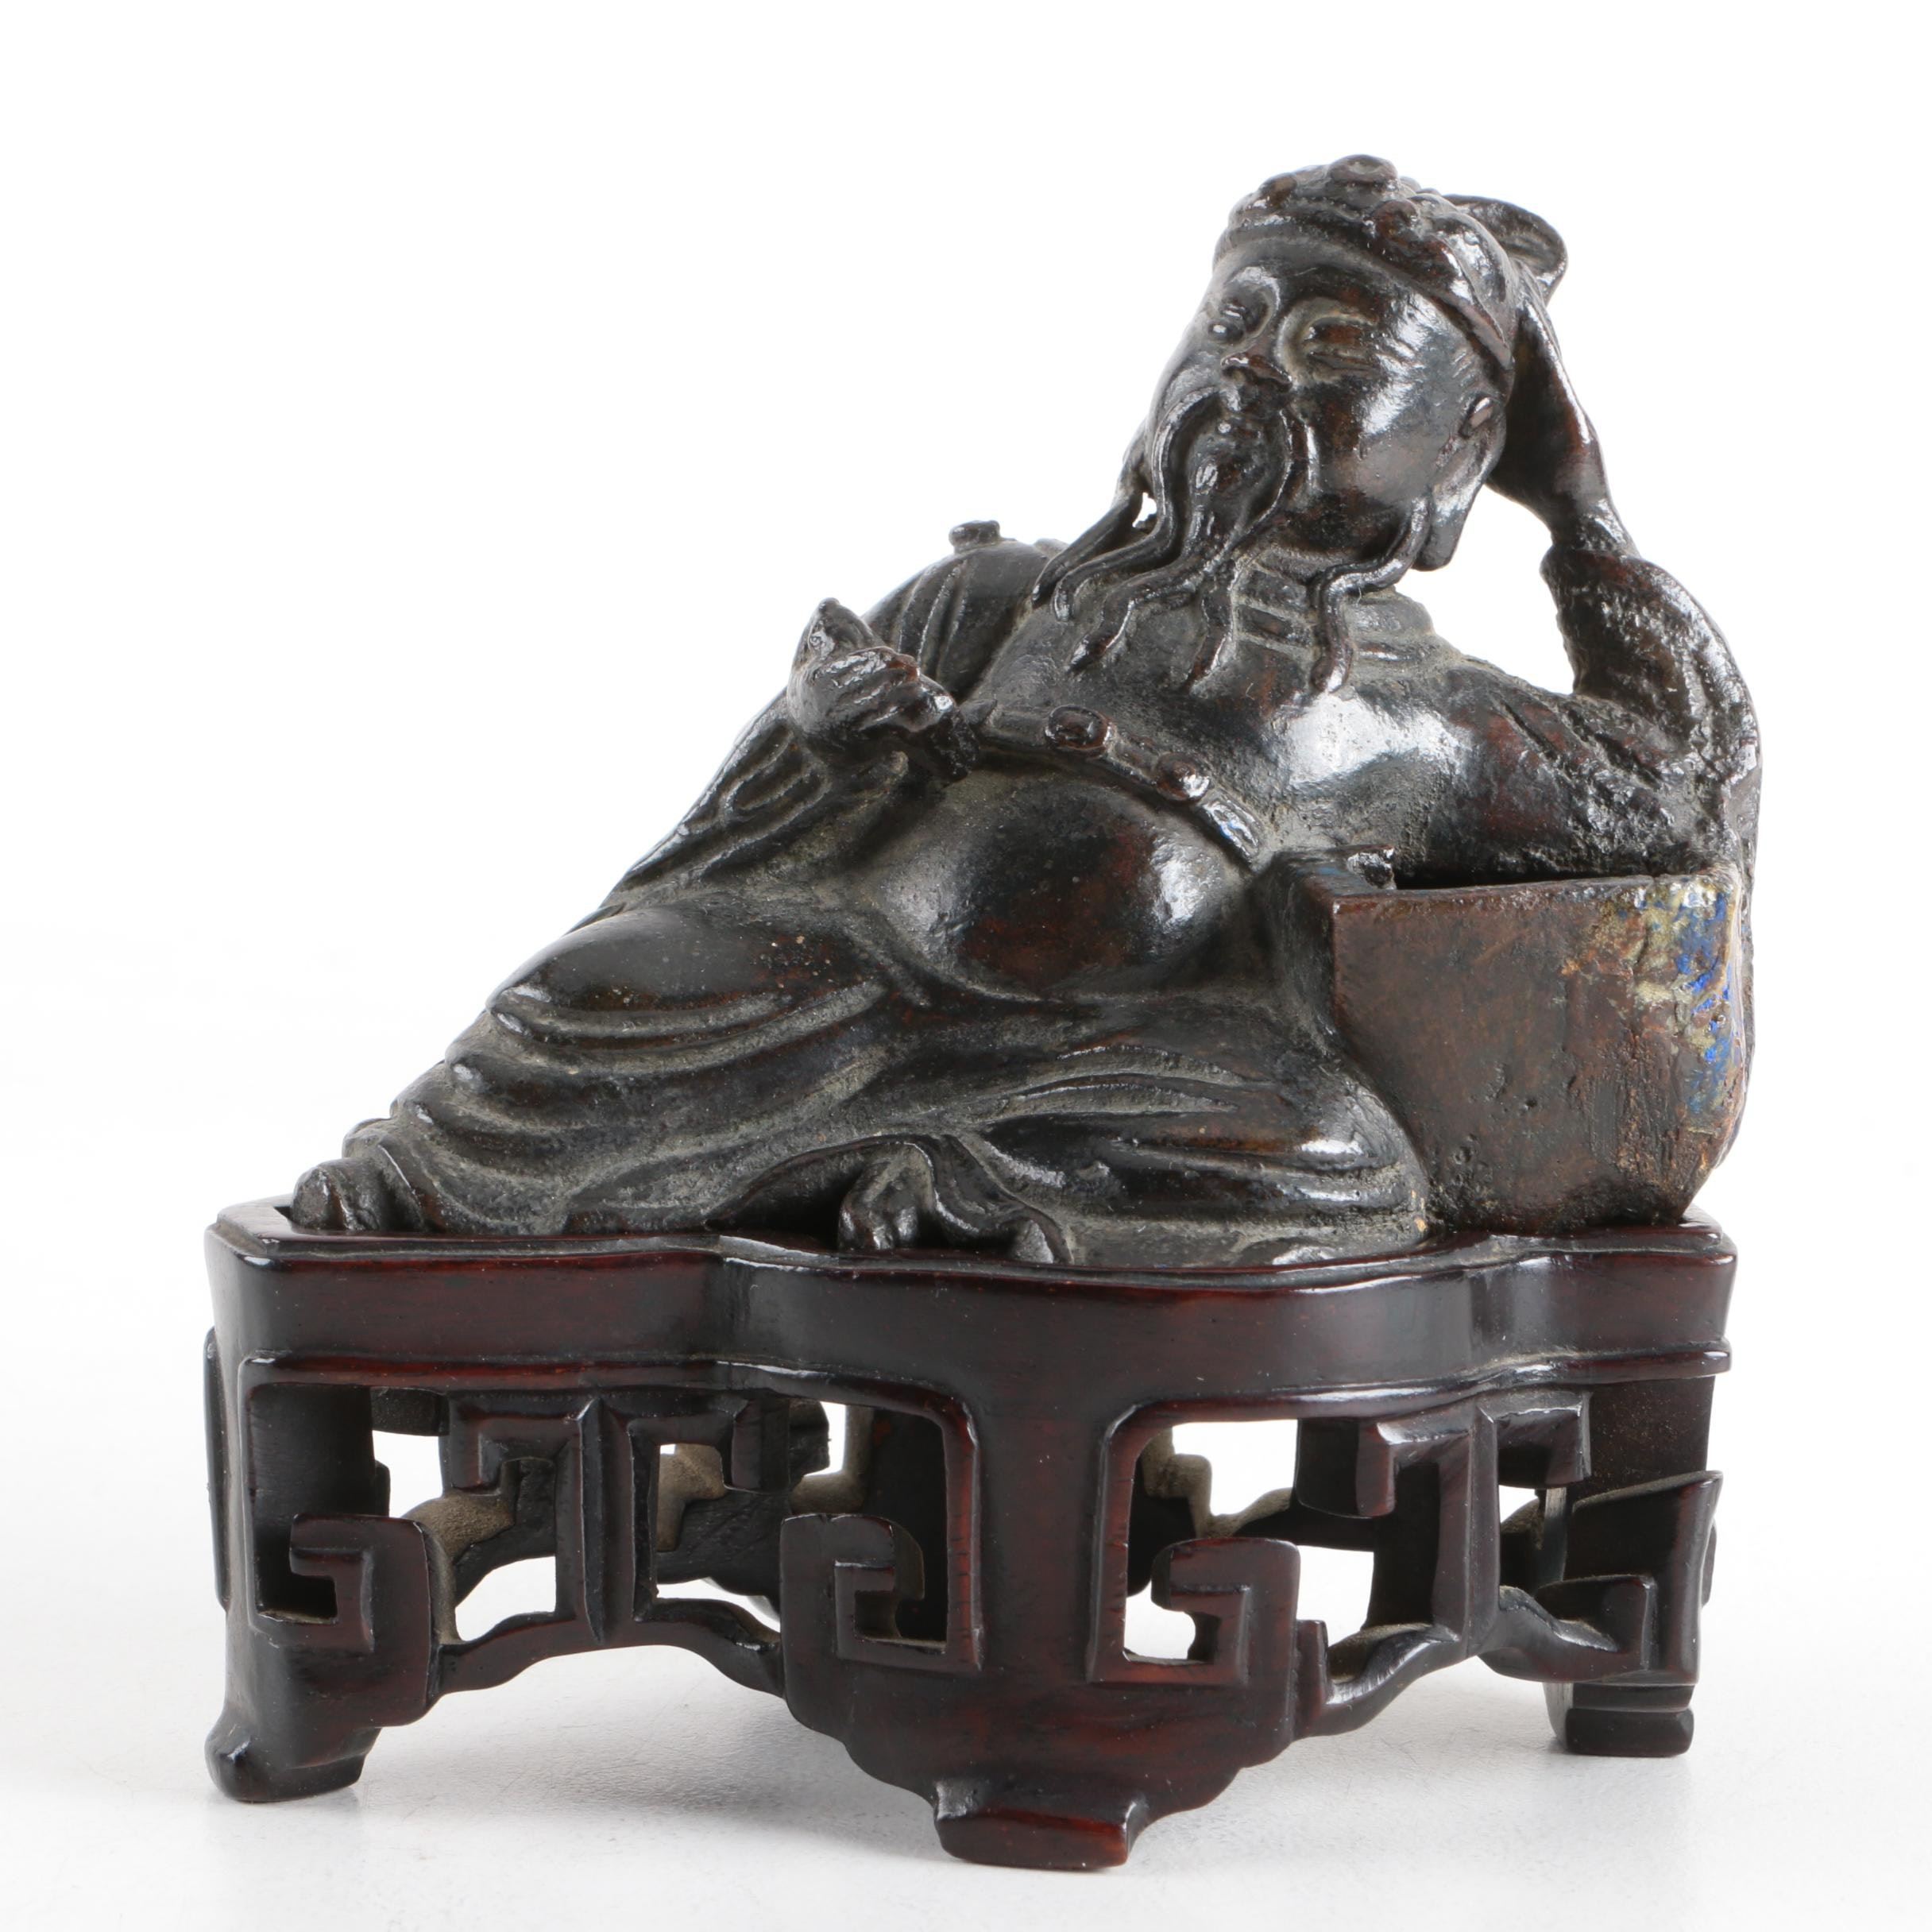 Chinese Cast Metal Reclining Figure on Wooden Base